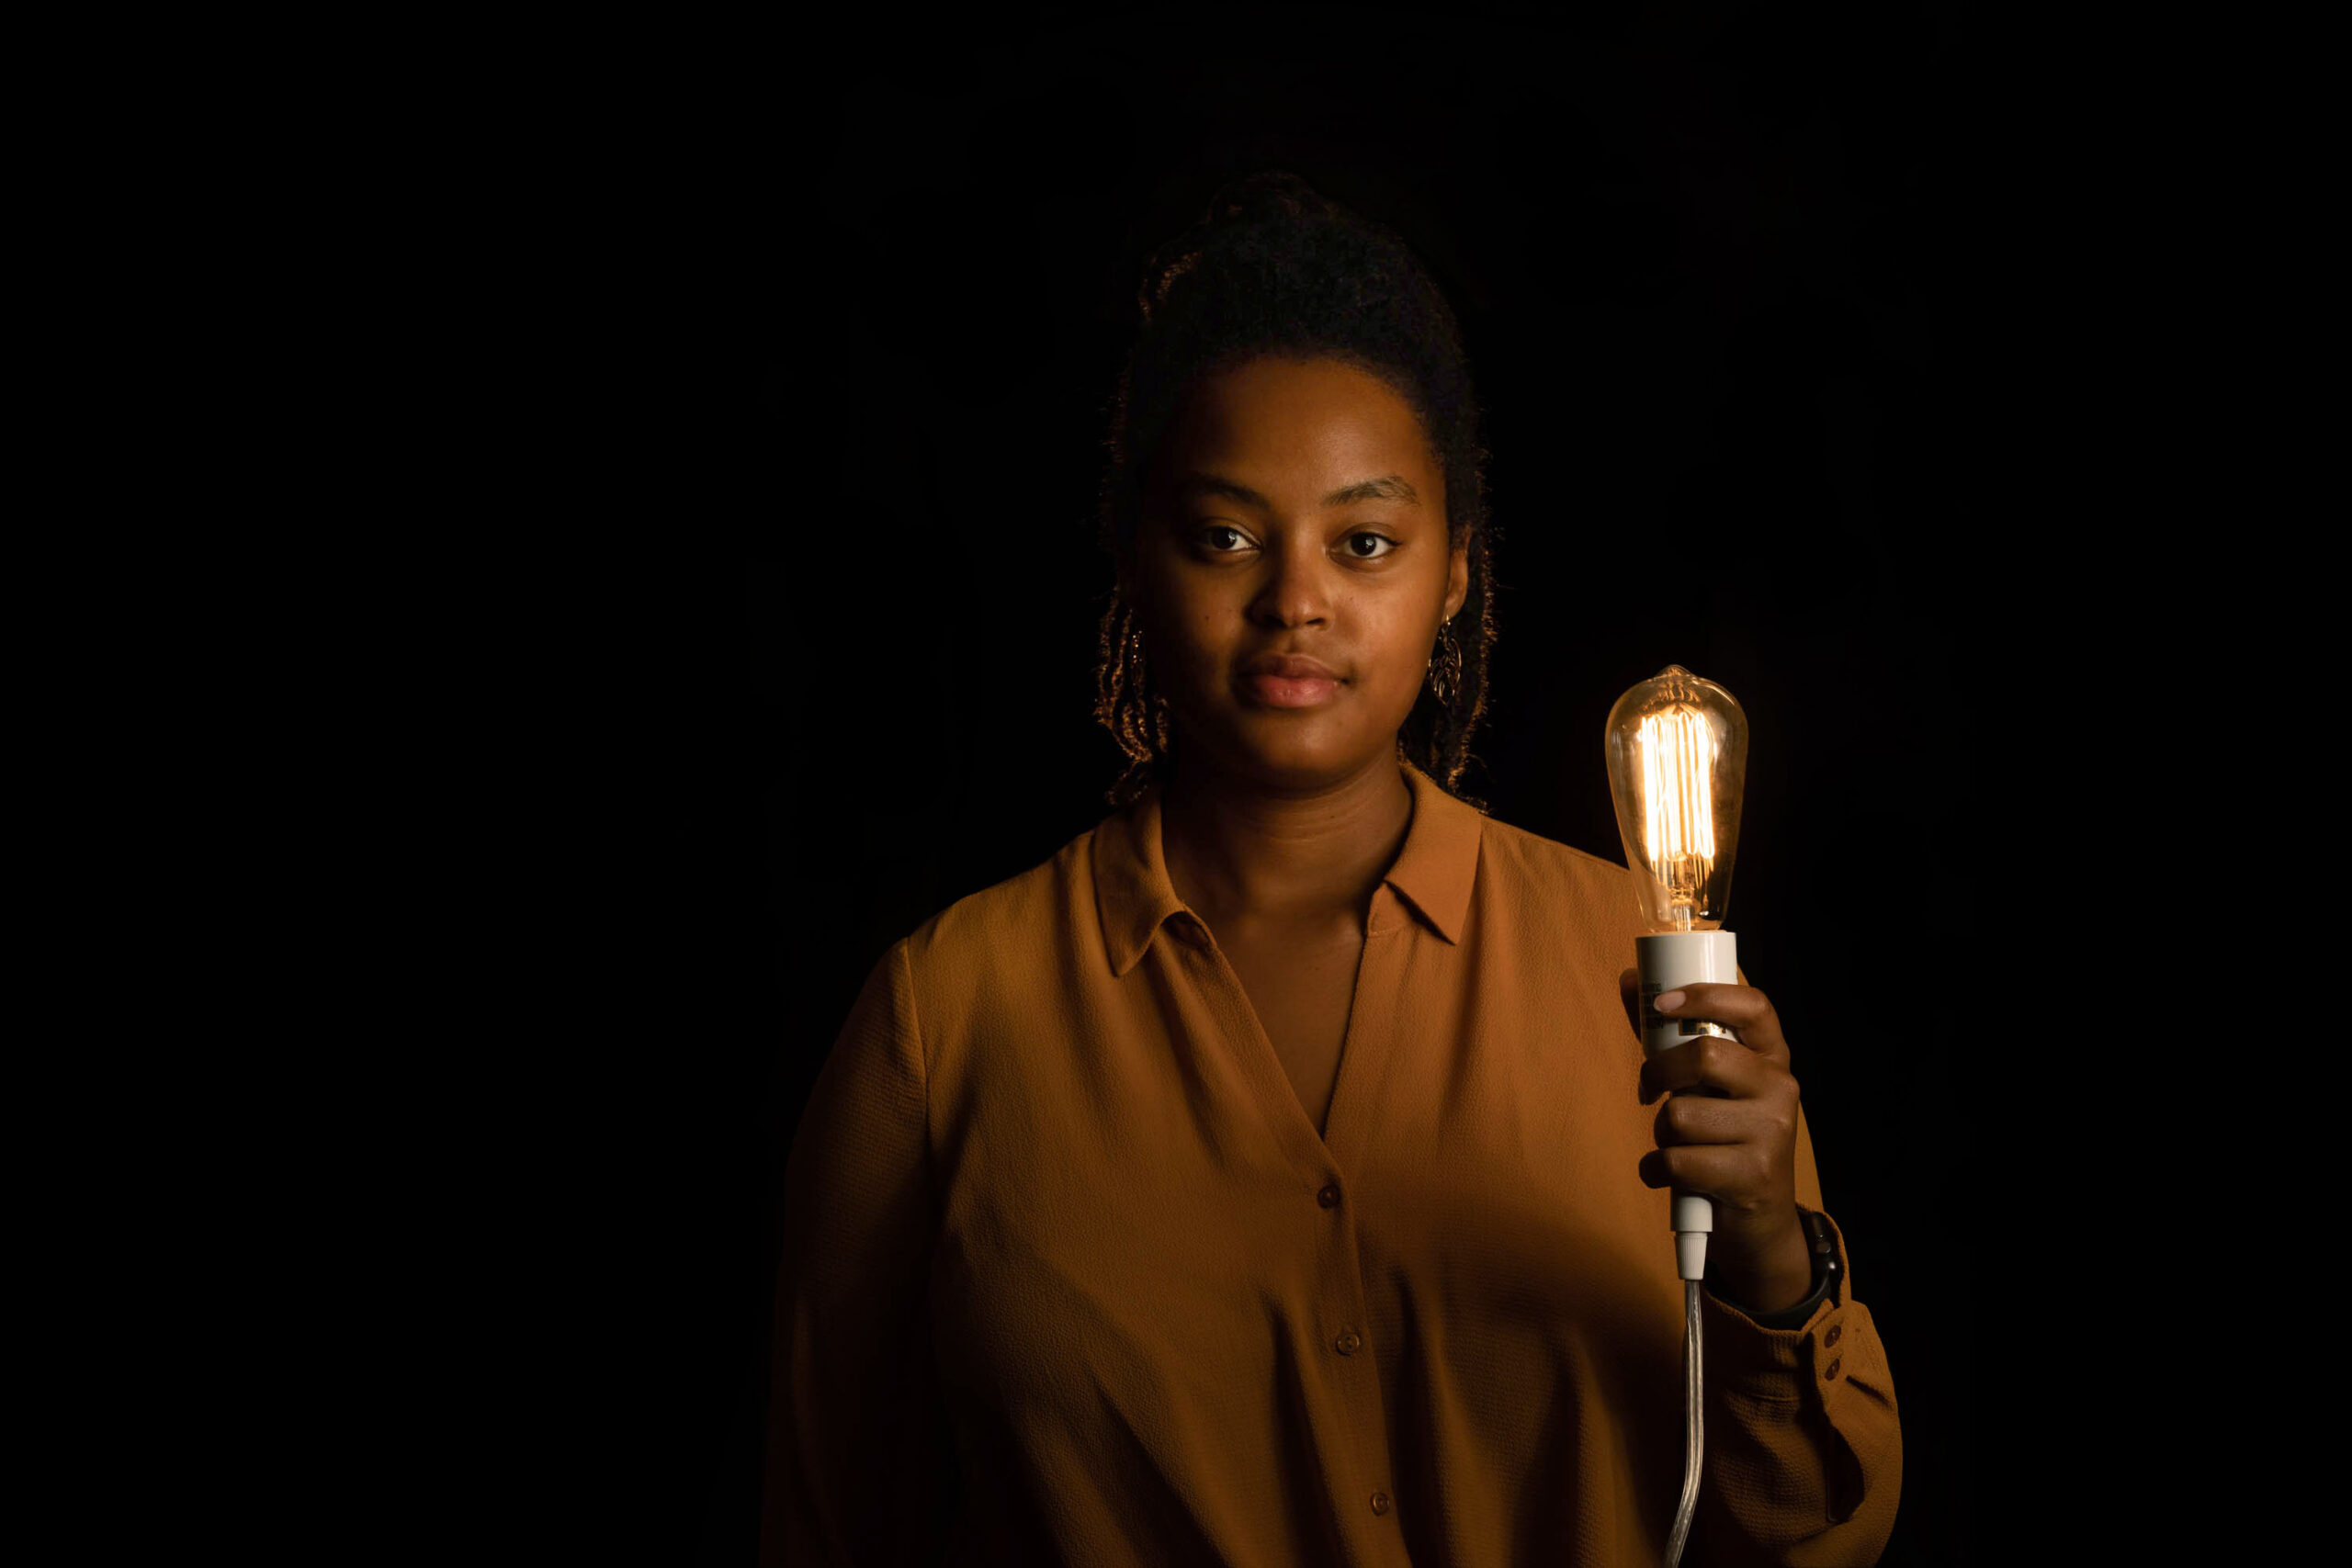 A woman poses for a portrait holding a lightbulb